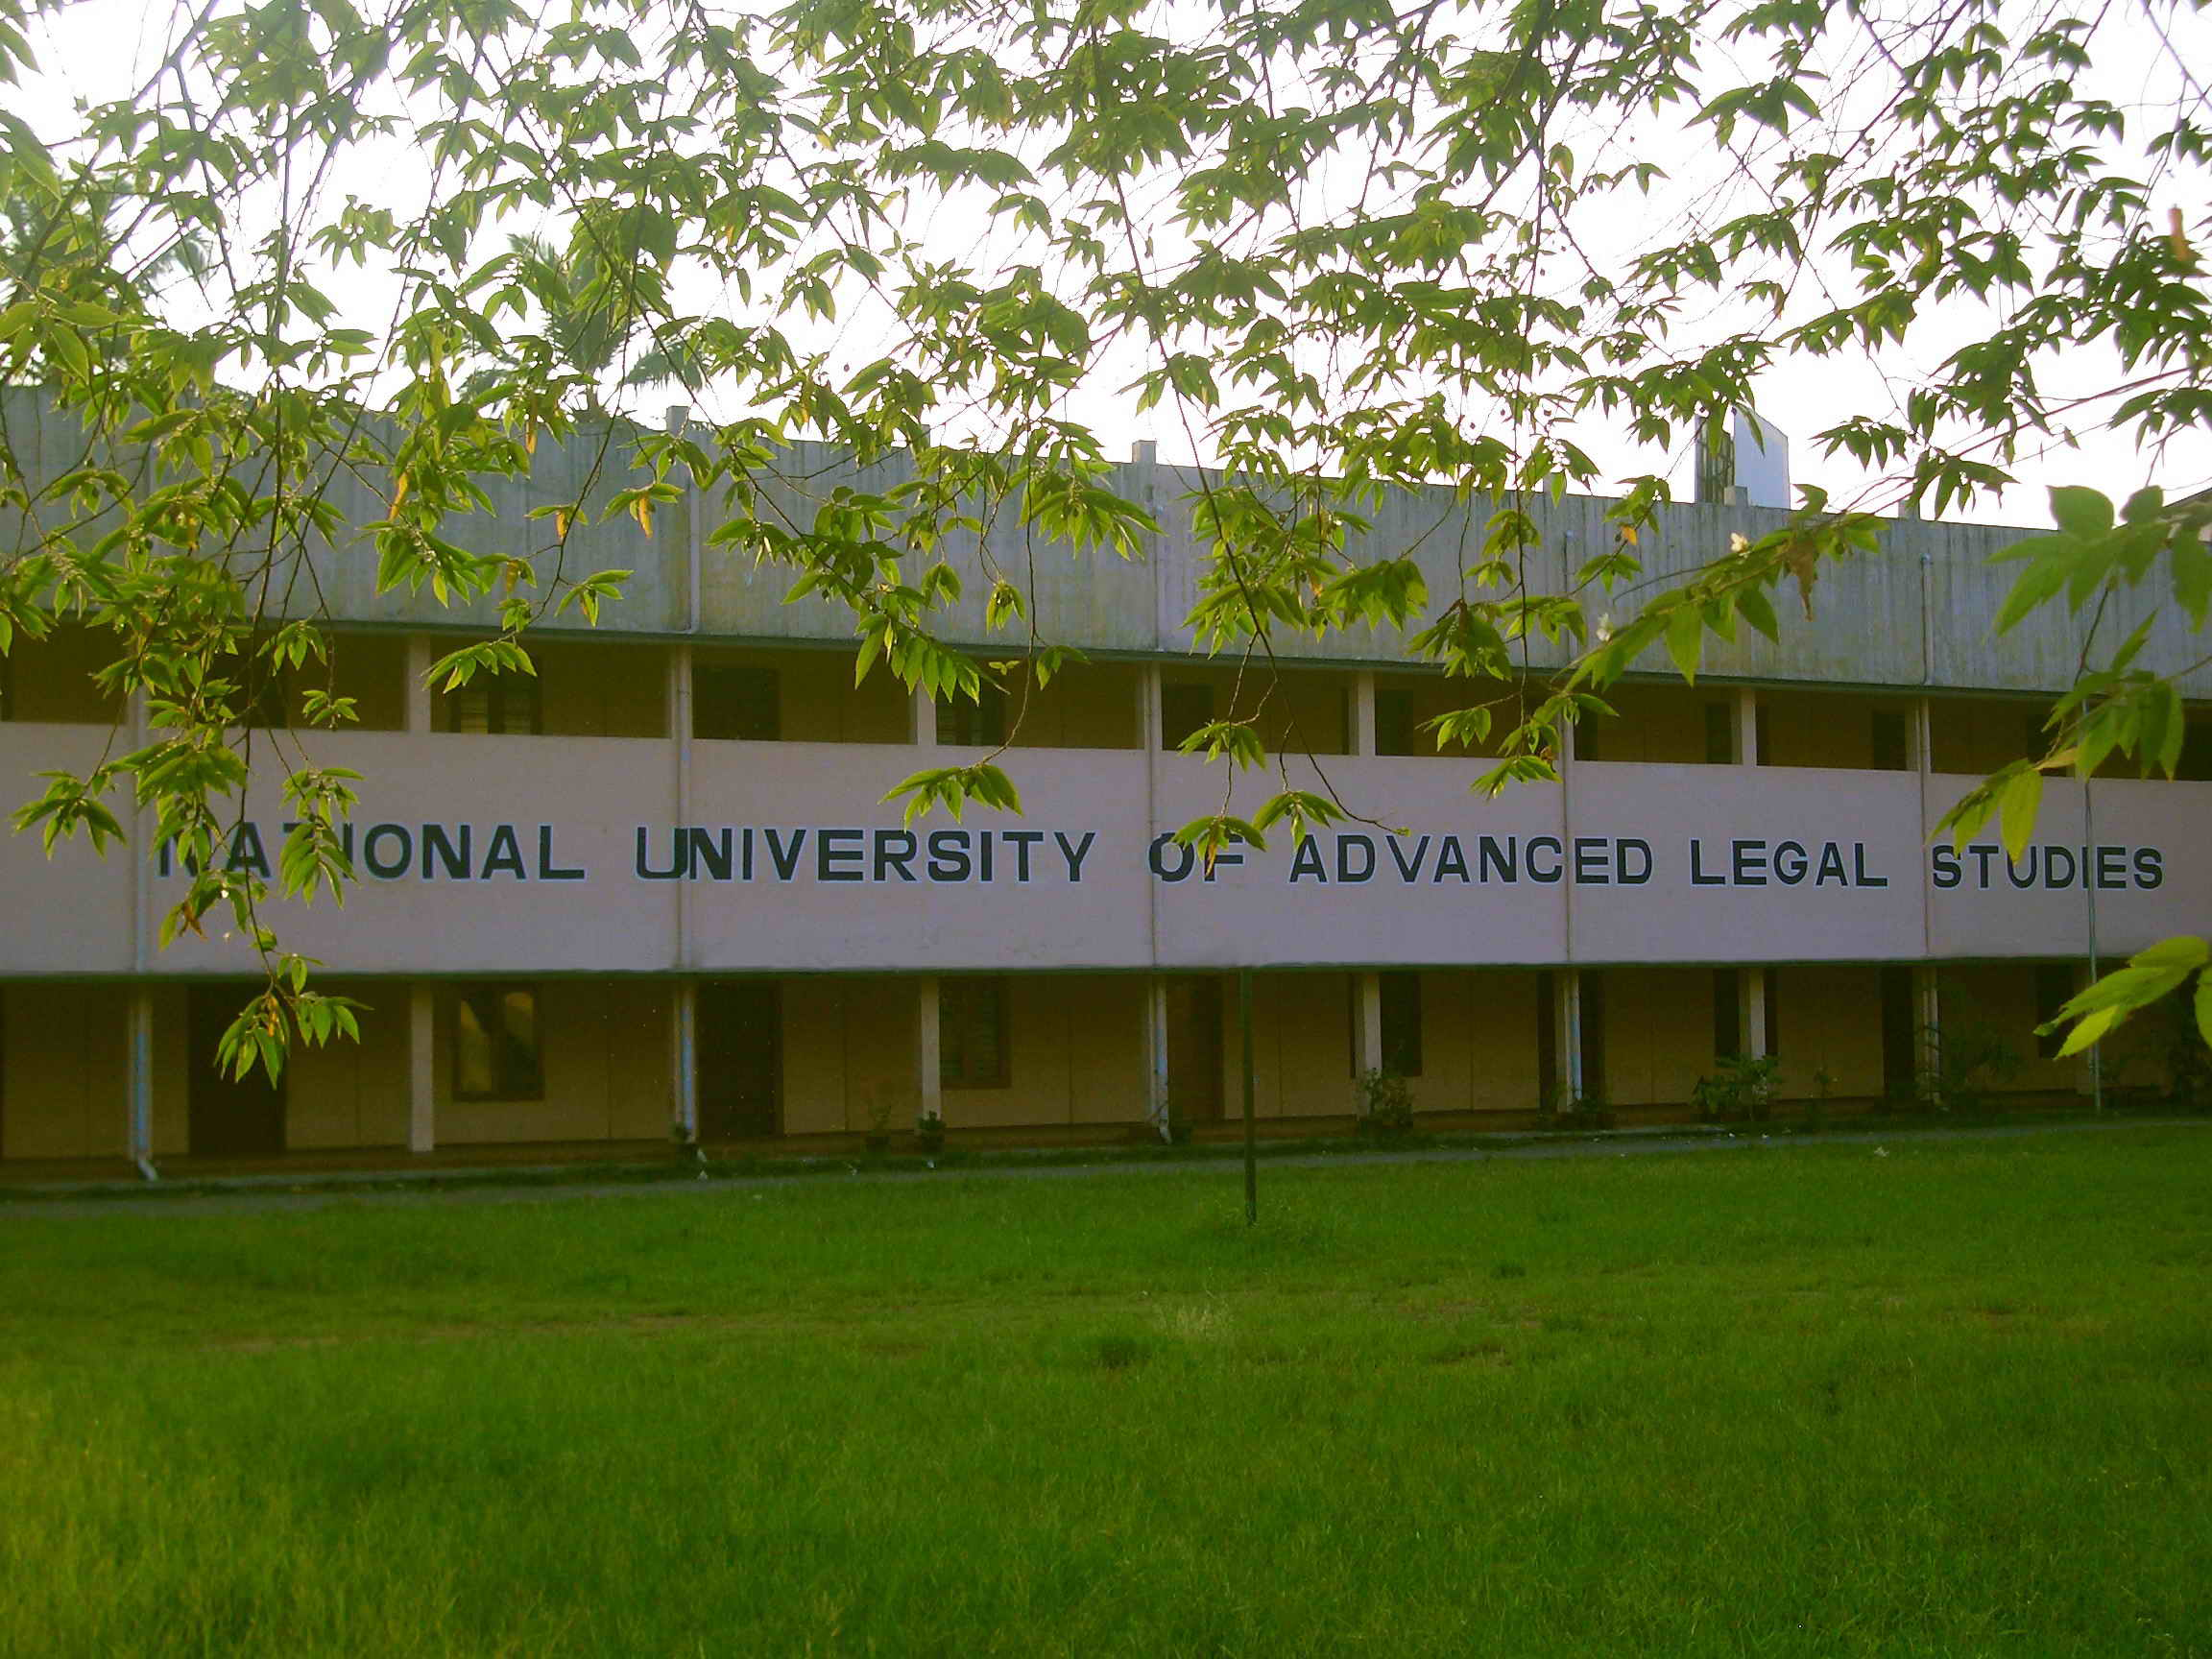 Legal study colleges